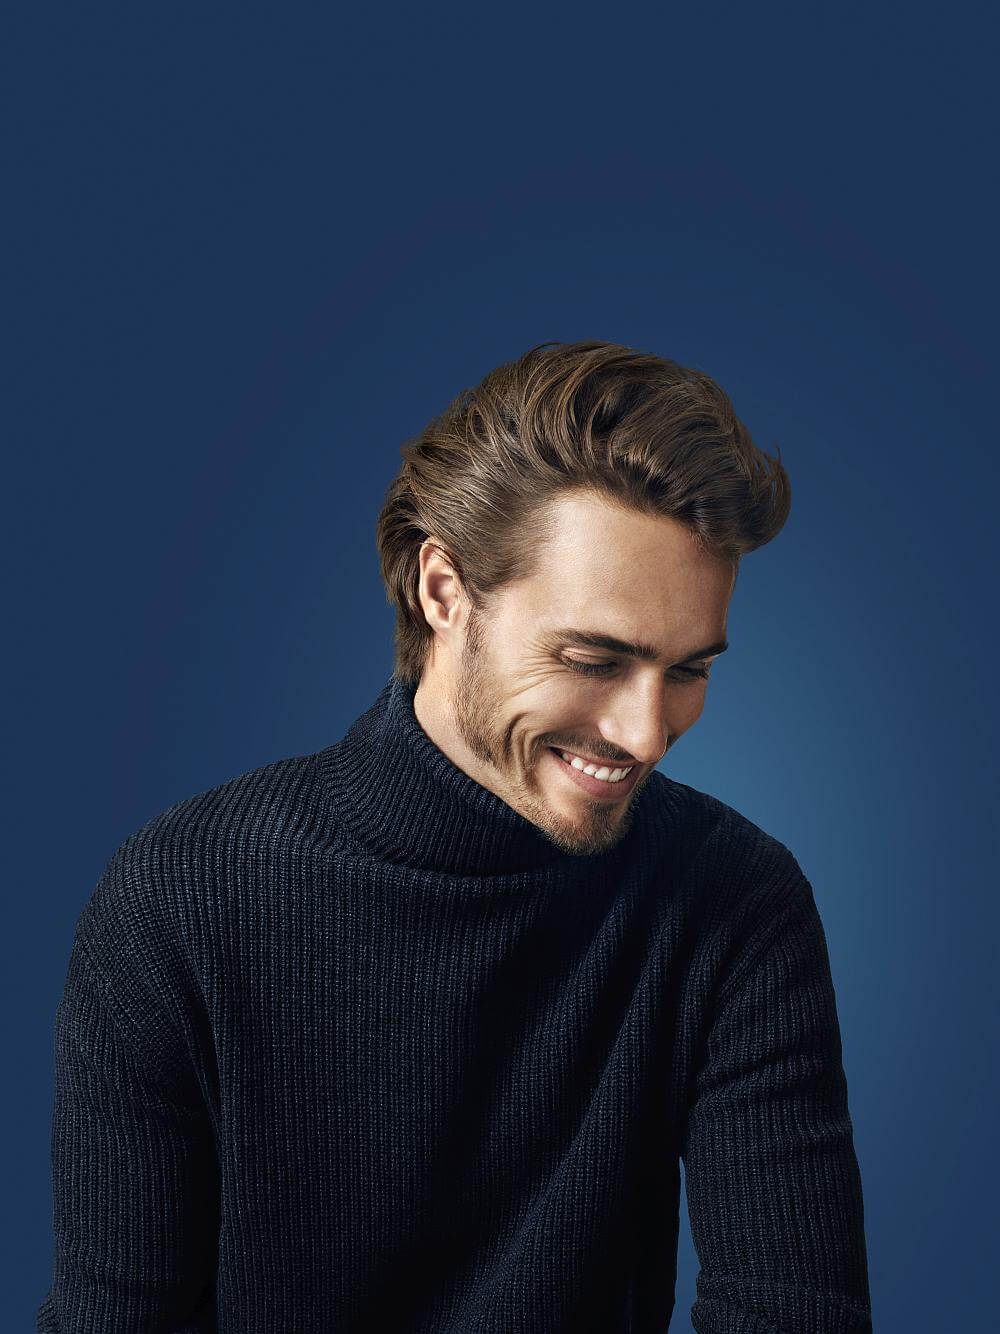 Man smiling with long quiff